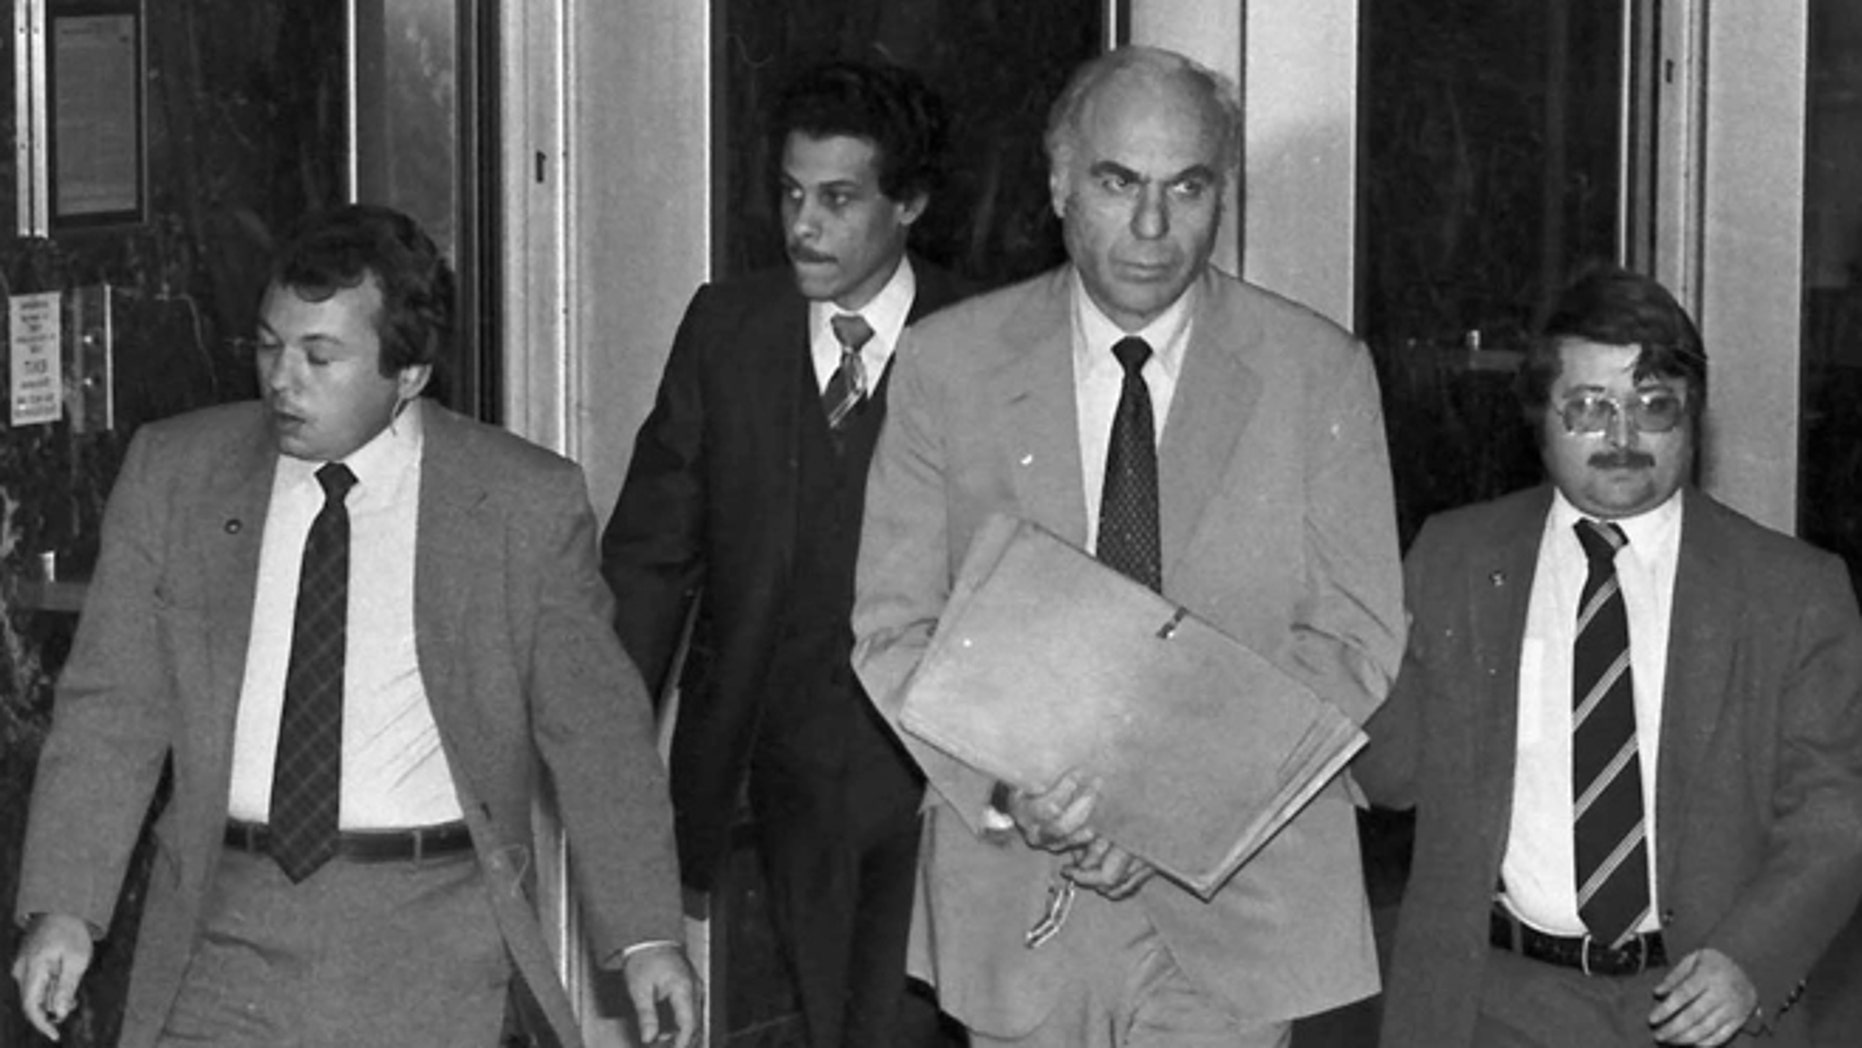 FILE - In this Jan. 22, 1983 file photo, ex-CIA agent Edwin Wilson, center, leaves federal court after a day of jury selection accompanied by U.S. Marshals in Houston.